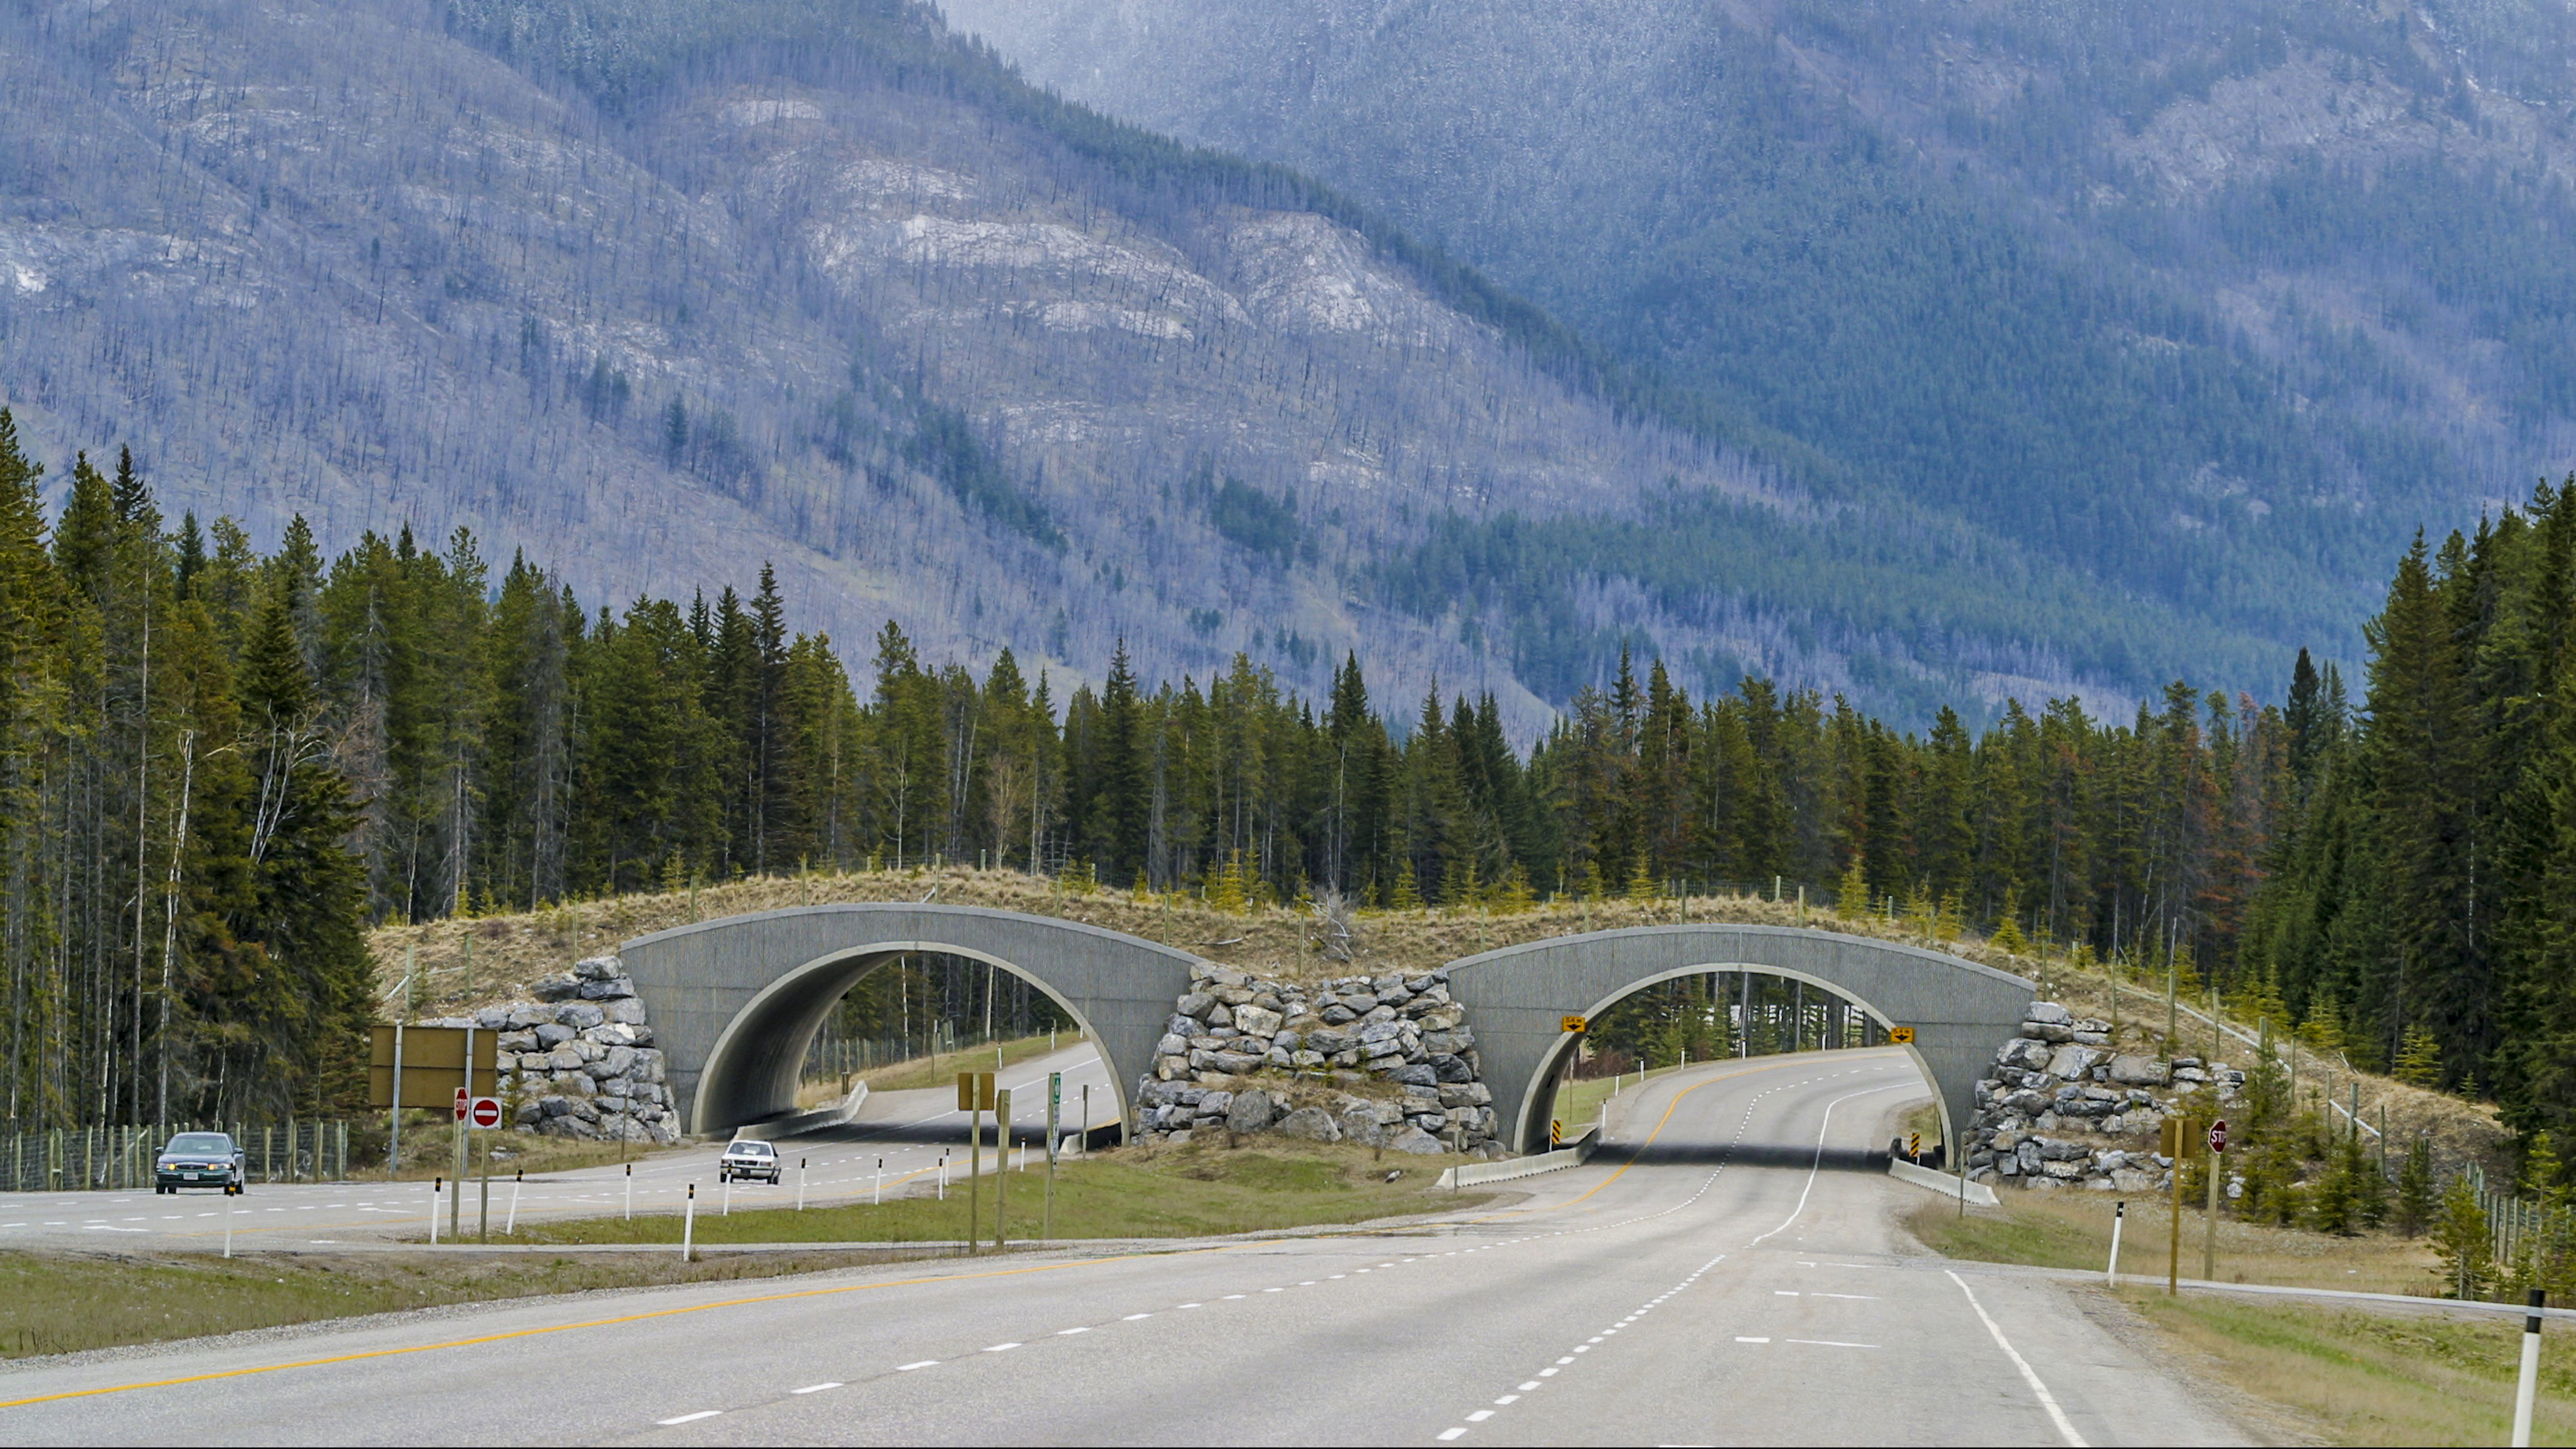 Wildlife crossing bridge, Banff, Banff National Park, Alberta, Canada. Several of these bridges cross the Trans-Canada Highway to allow wildlife a safe crossing over the highways.